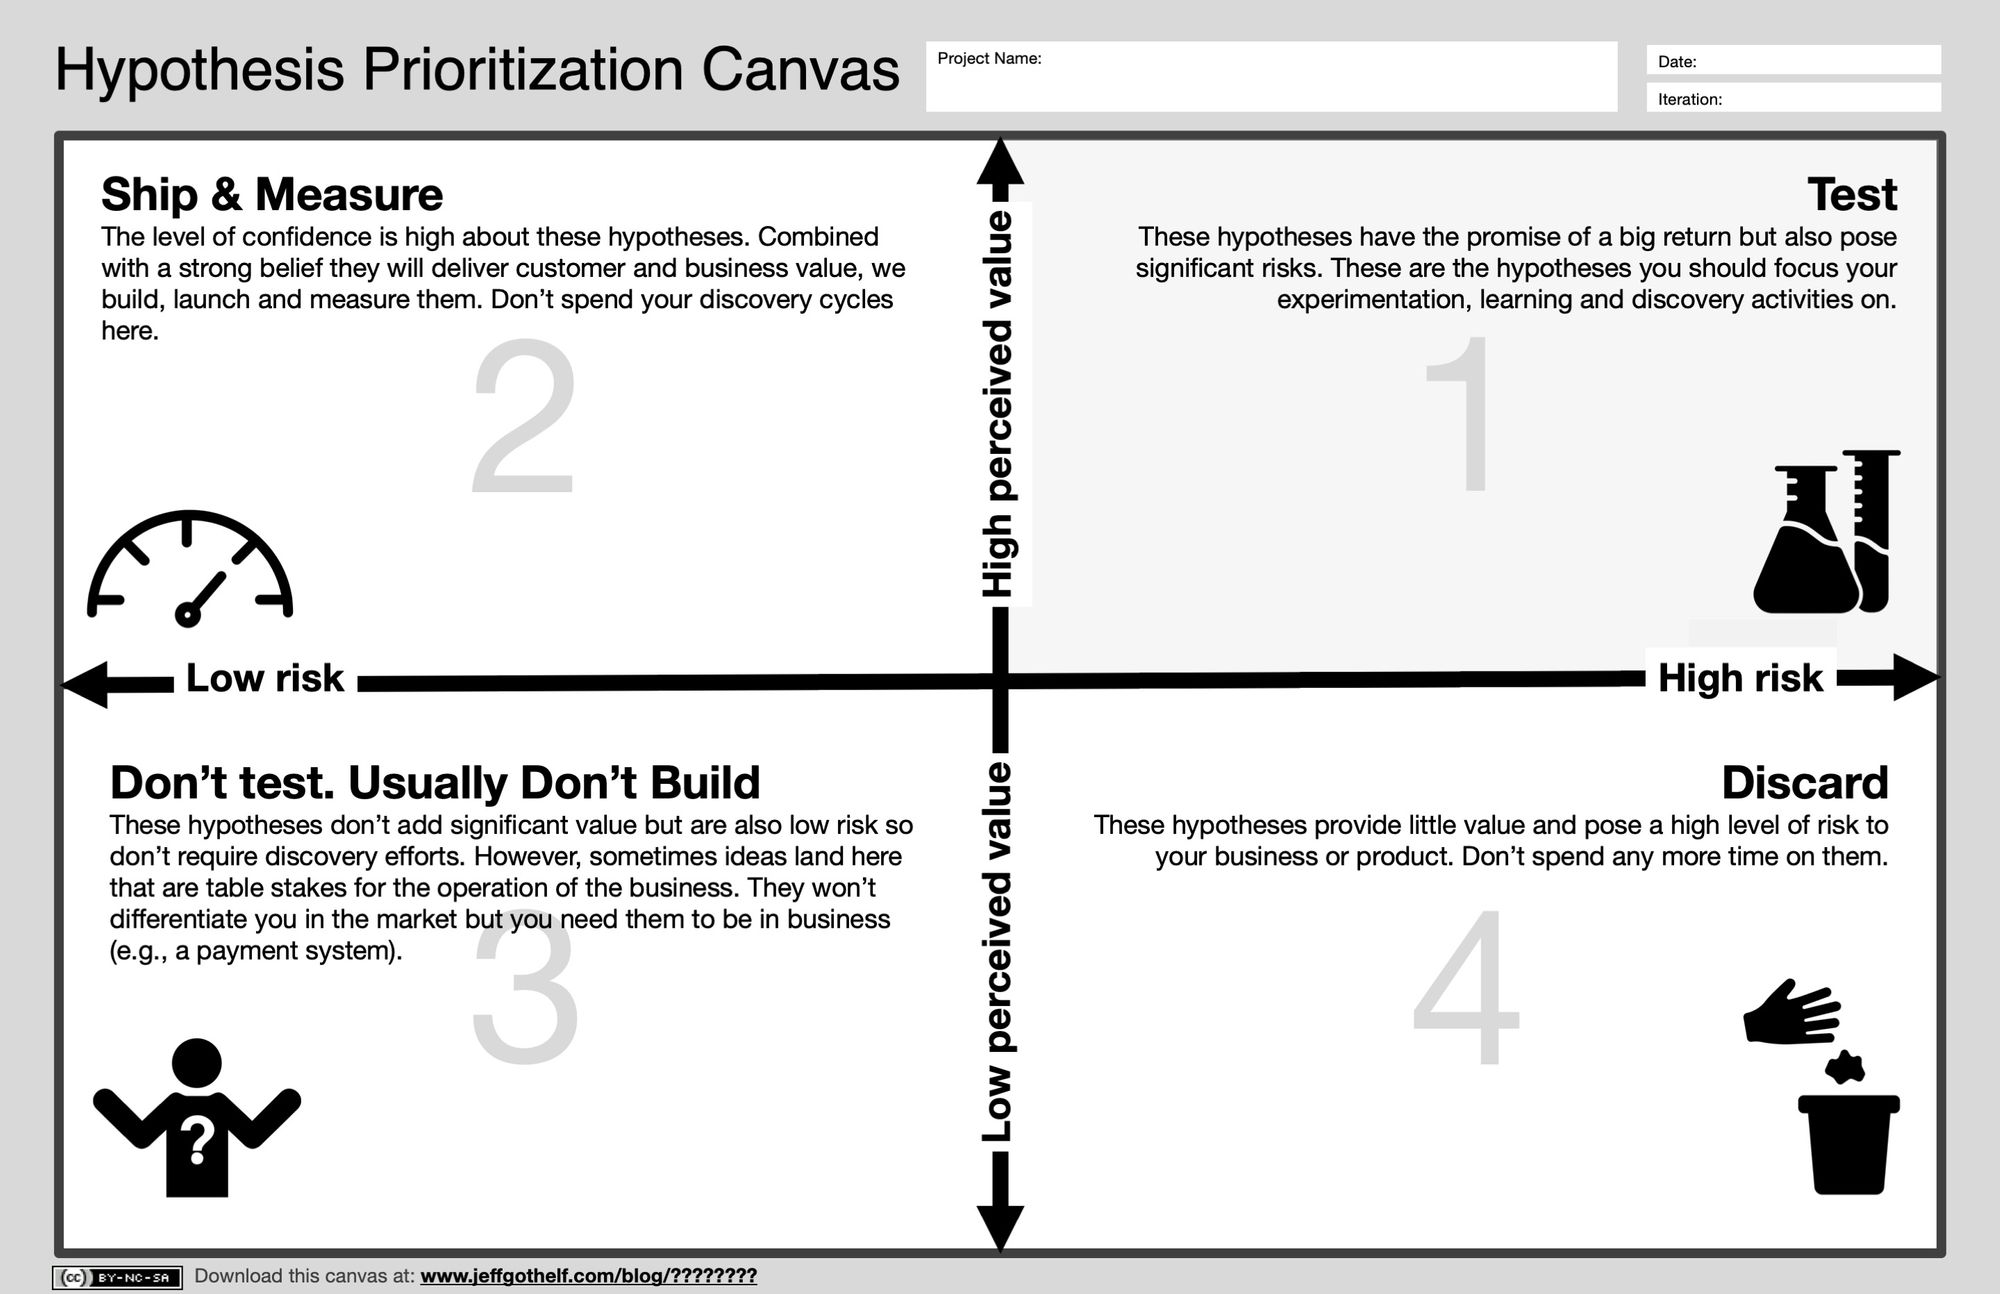 Hypothesis Prioritization Canvas